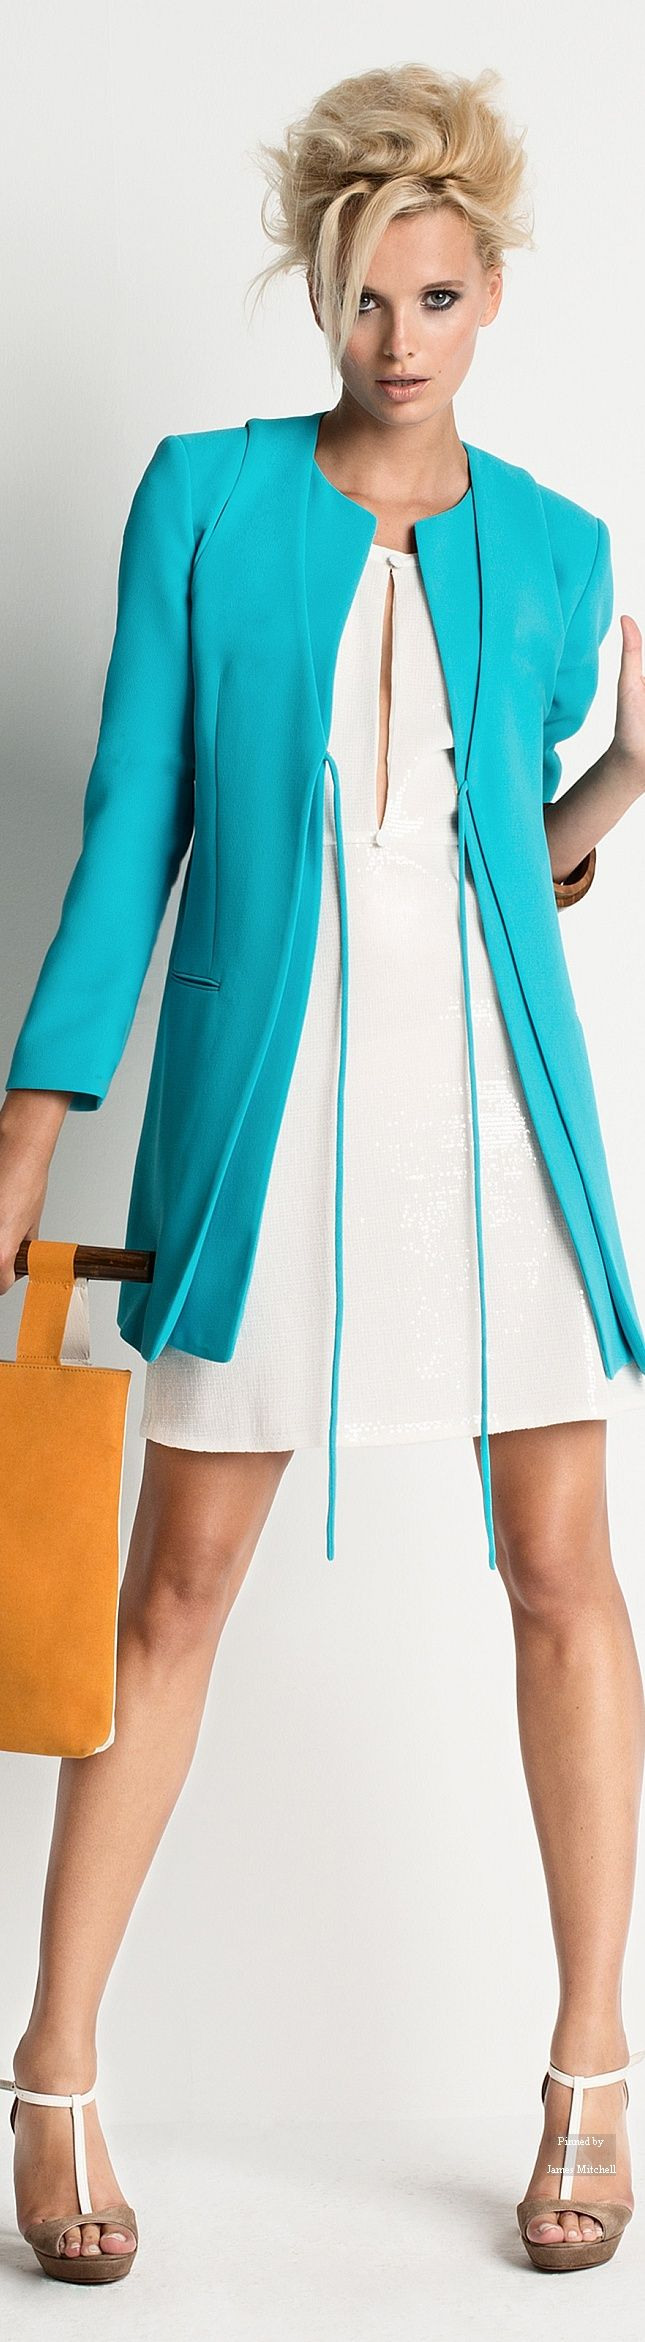 Luciano Soprani Spring Summer 2015 Ready-To-Wear collection